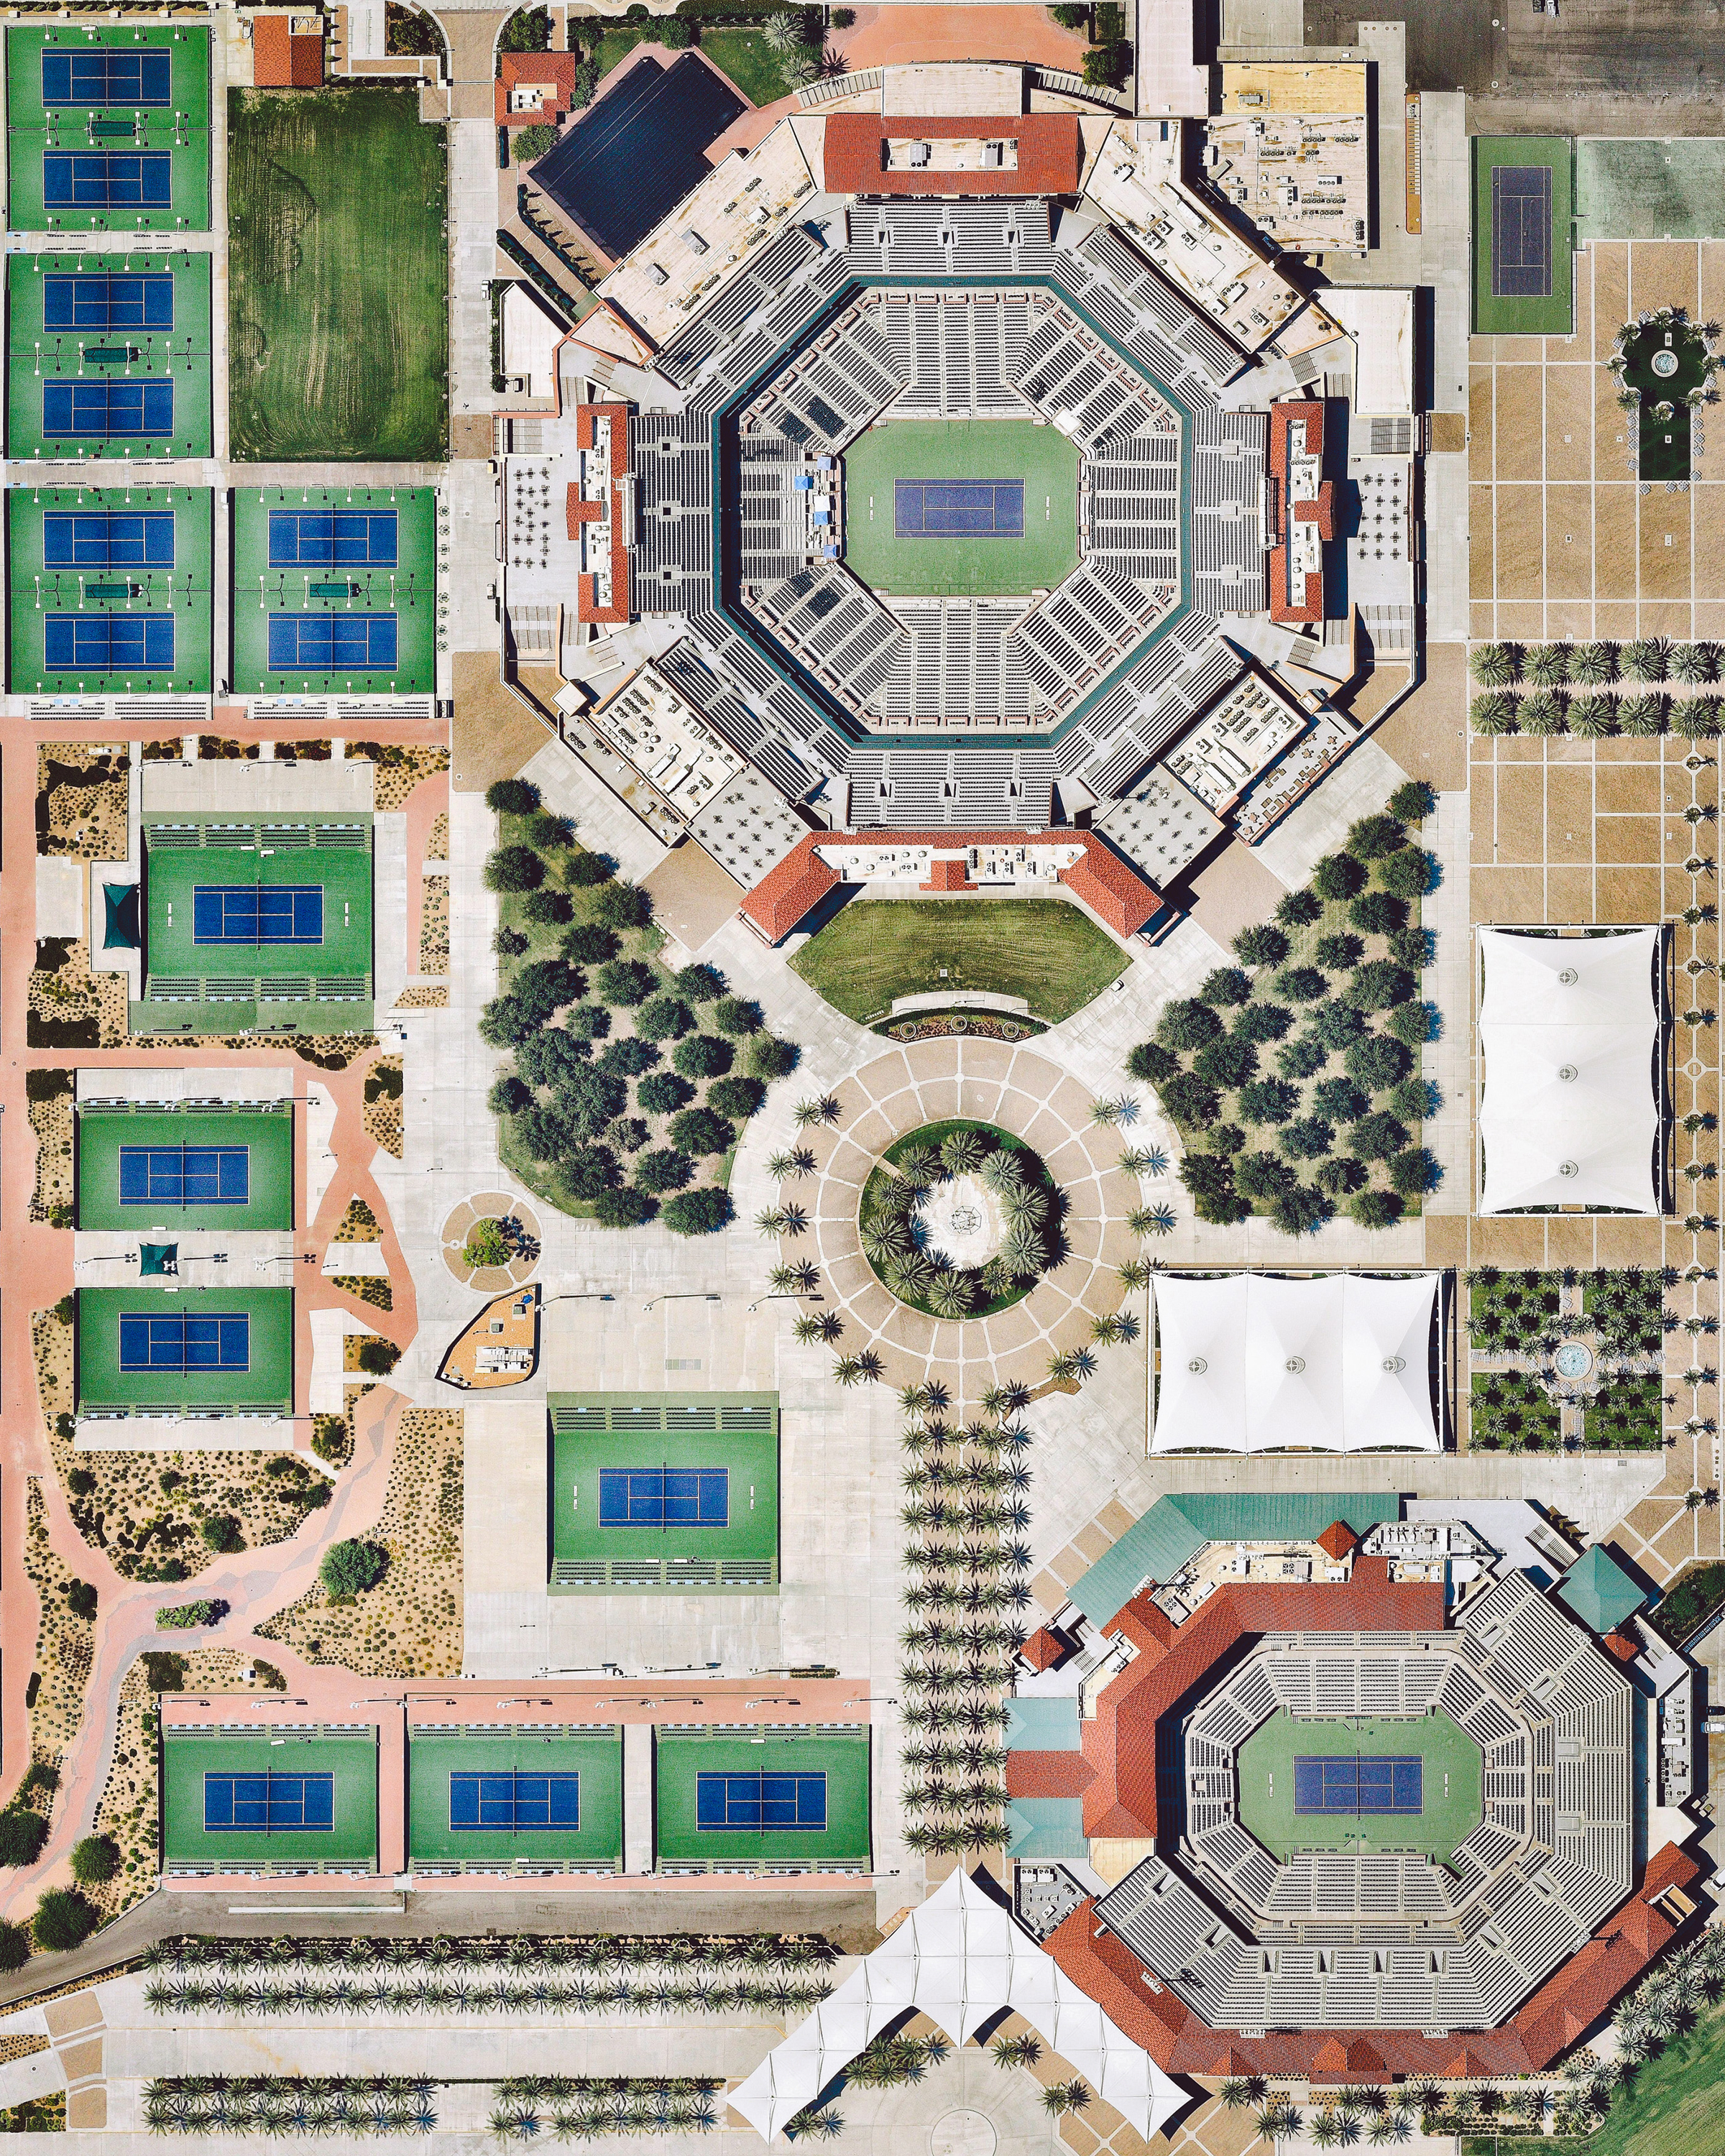 "The Indian Wells Tennis Garden is a 29-court complex located on 88 acres (360,000 sq. m) near Palm Springs, California. Its 16,000-capacity ""Stadium 1"" is the second largest outdoor tennis stadium in the world. Every year, the complex hosts the Indian Wells Masters, also known as the BNP Paribas Open — the best-attended tennis tournament outside of the four Grand Slam tournaments.  33.723541, -116.304663  Source imagery: Nearmap"